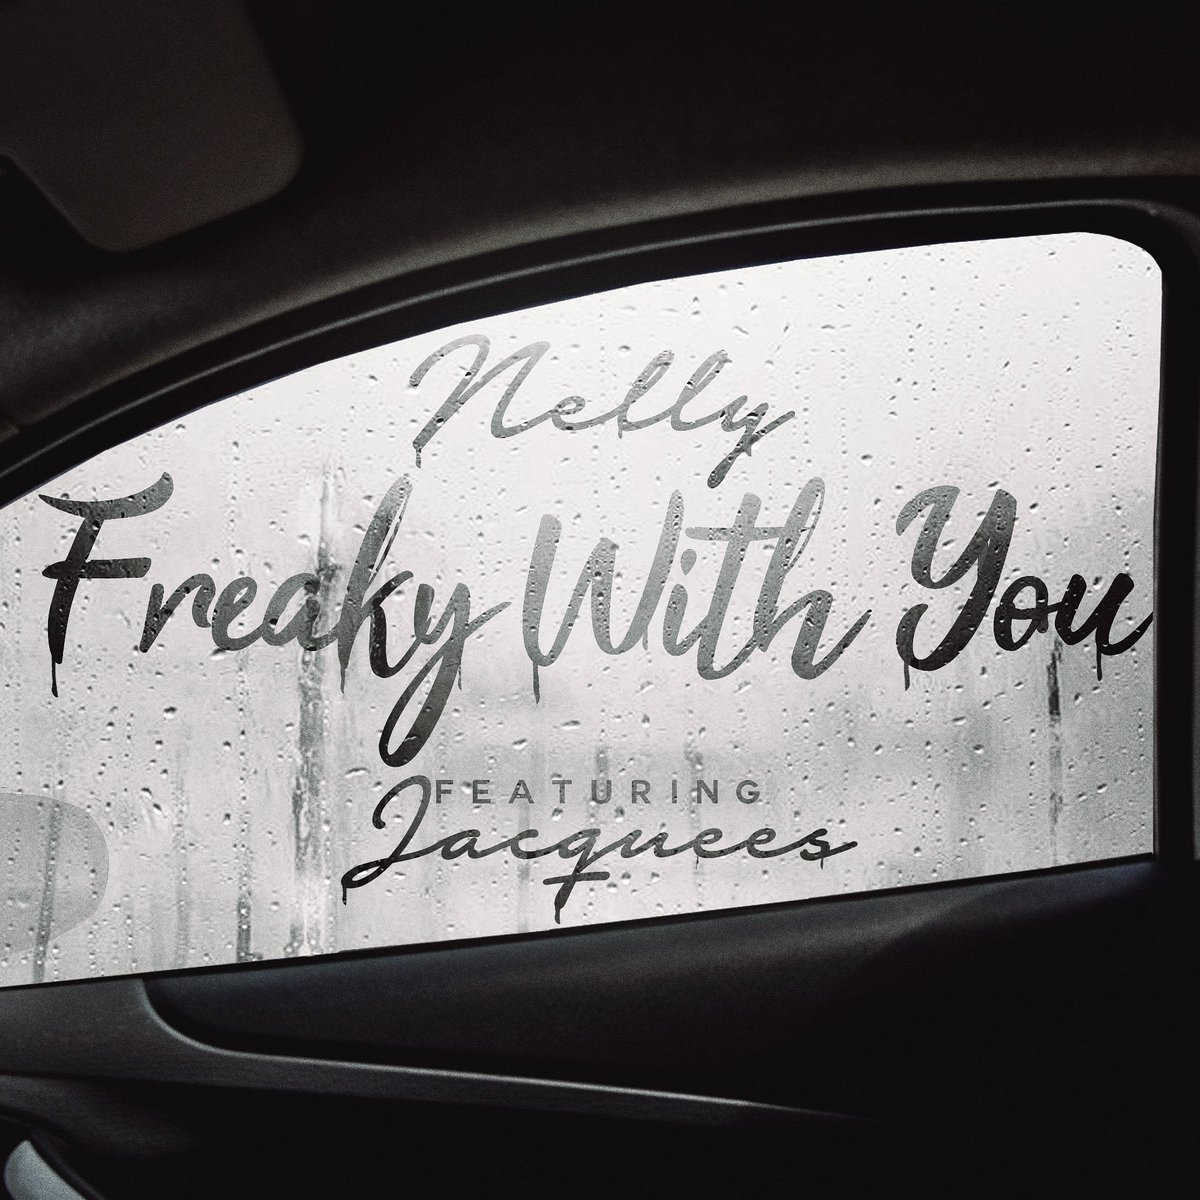 New single #FreakyWithYou ft. @jacquees out everywhere now https://t.co/76MvOAOAk7